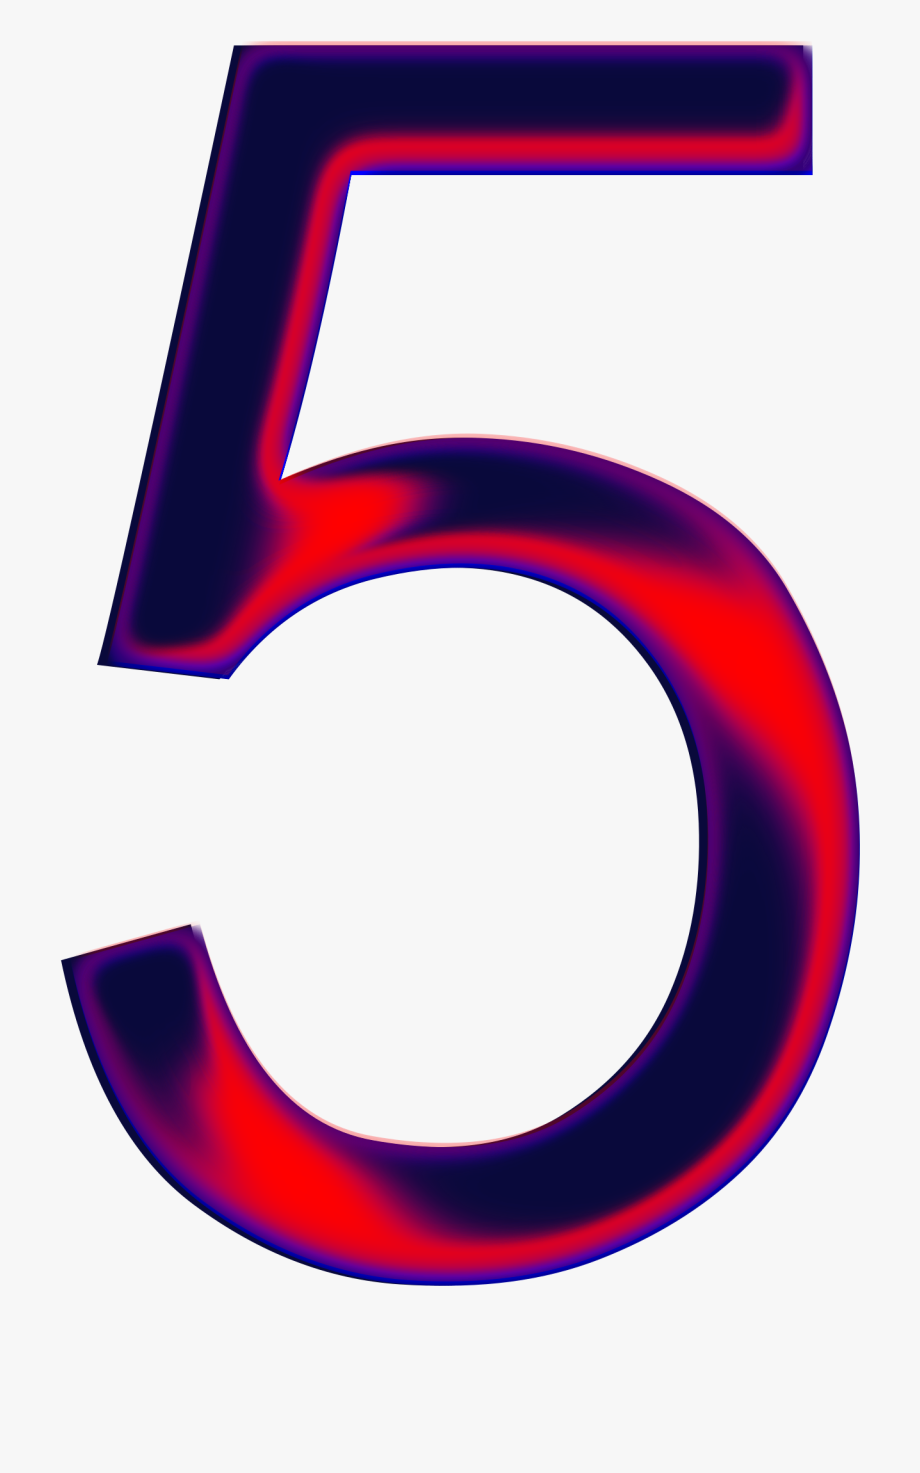 Number five cliparts.